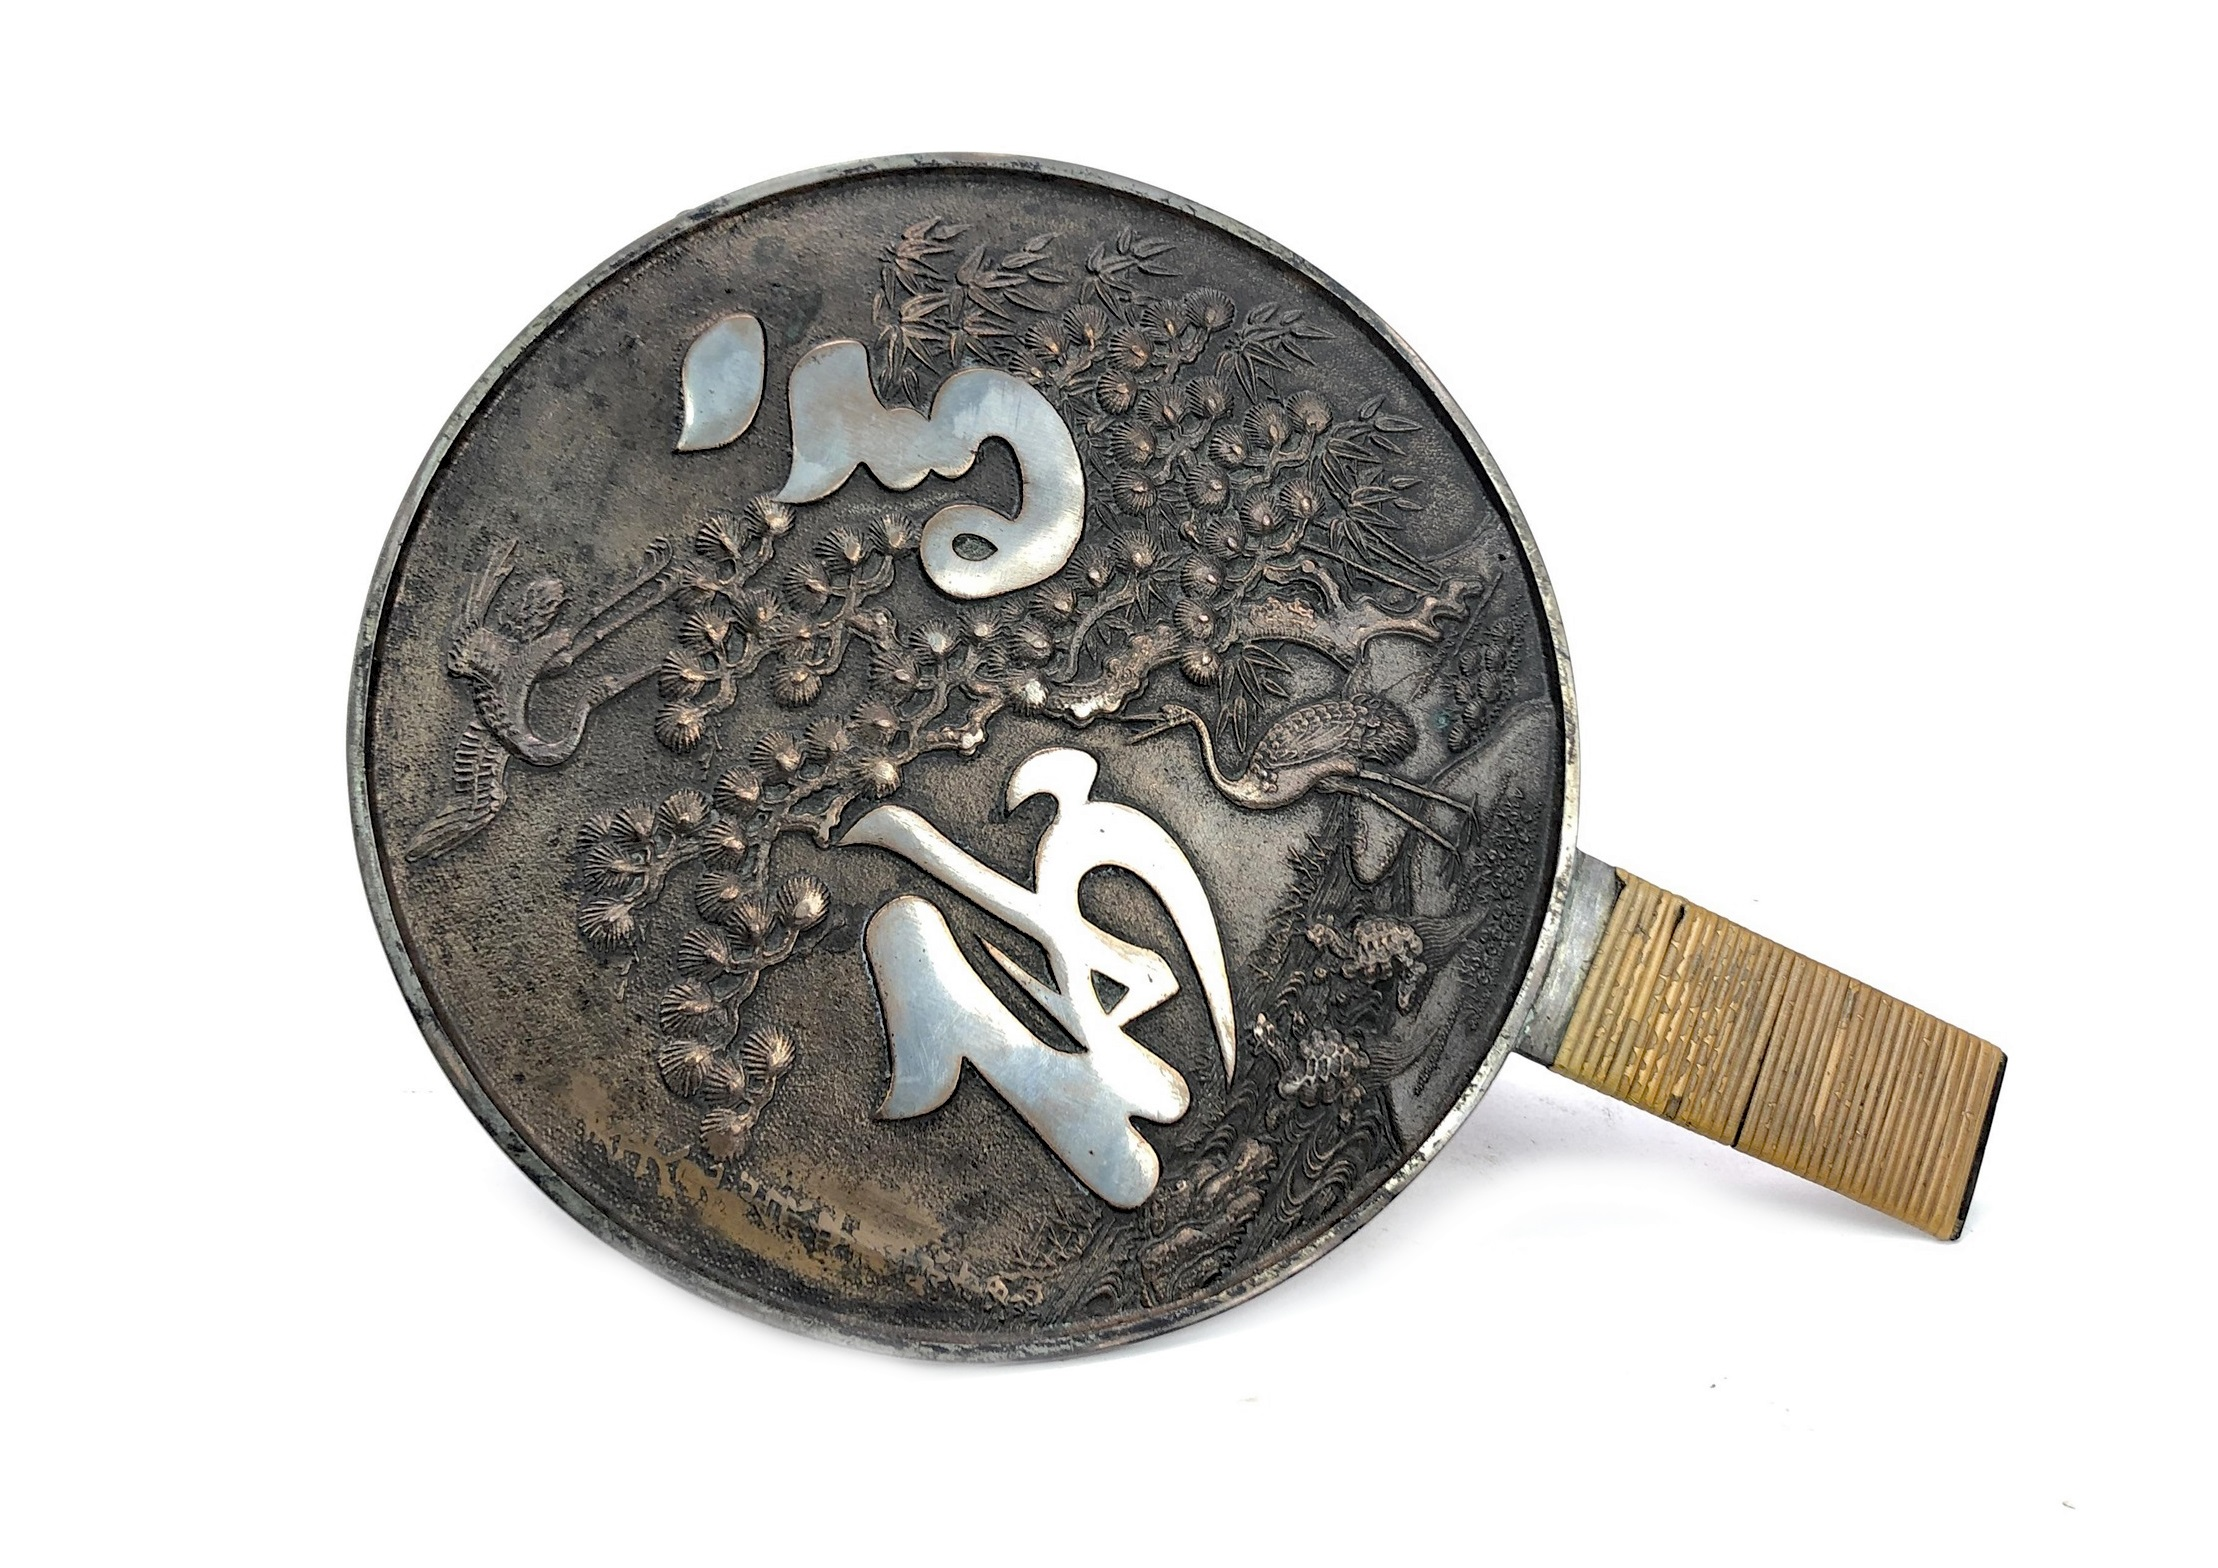 A PAIR OF EARLY/MID 20TH CENTURY CHINESE HAND MIRRORS - Image 2 of 2